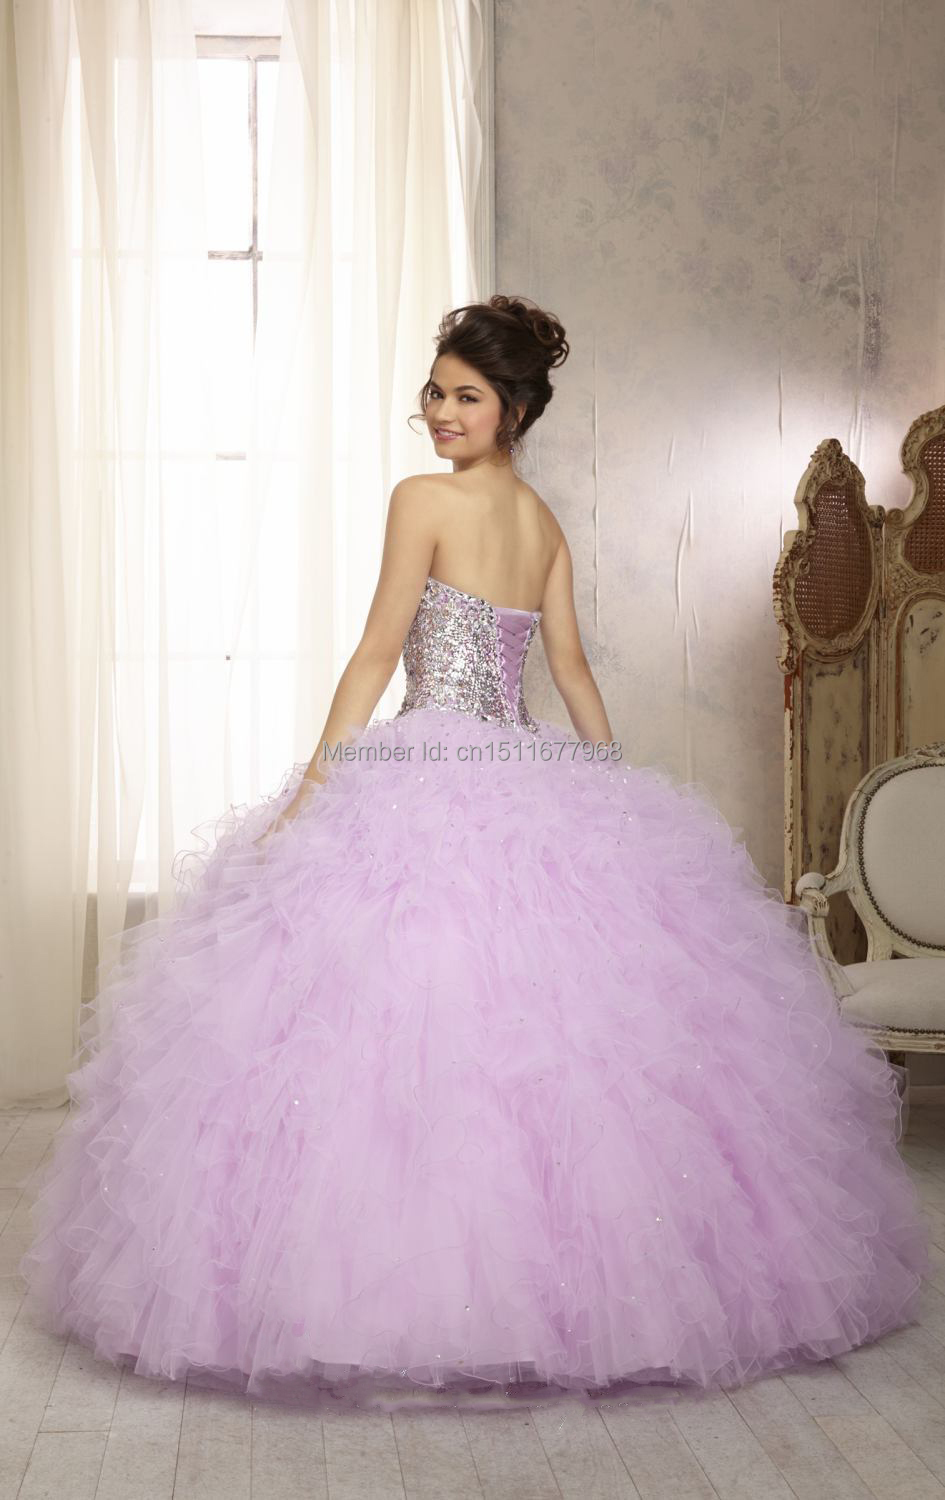 Aliexpress.com : Buy Light Pink Purple Blue Sequin Corset Ball ...